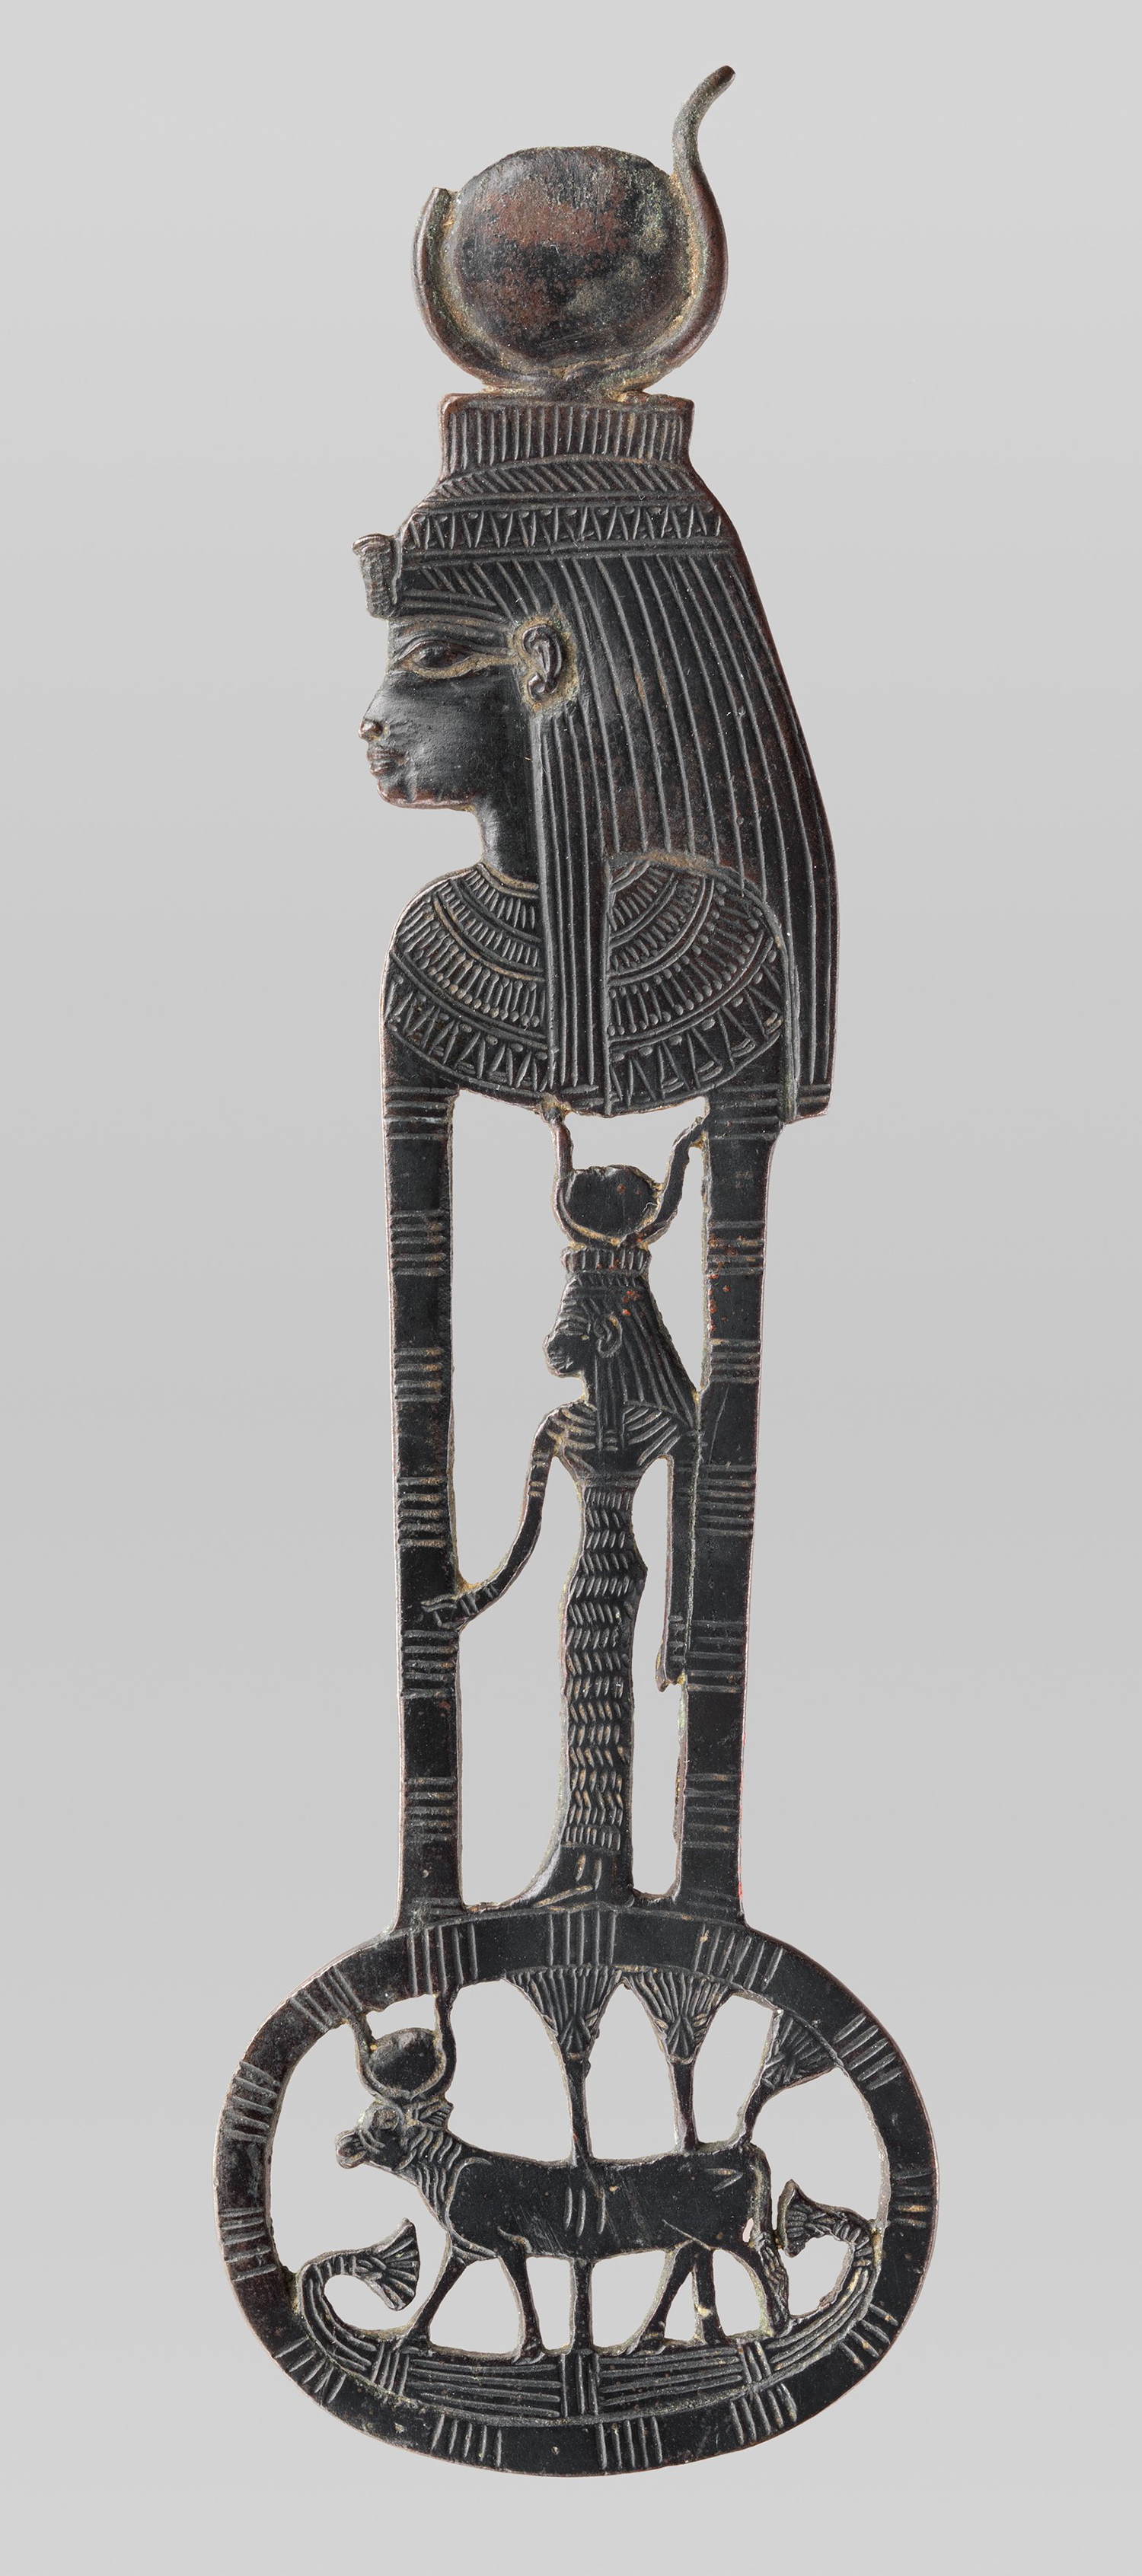 Figure 22: This  menat , or necklace counterpoise, depicts the goddess Hathor both in the form of a woman wearing a horned sundisk crown and as a cow wearing a similar headgear. Image courtesy of the Metropolitan Museum of Art [51.157.2, Rogers Fund, 1951].